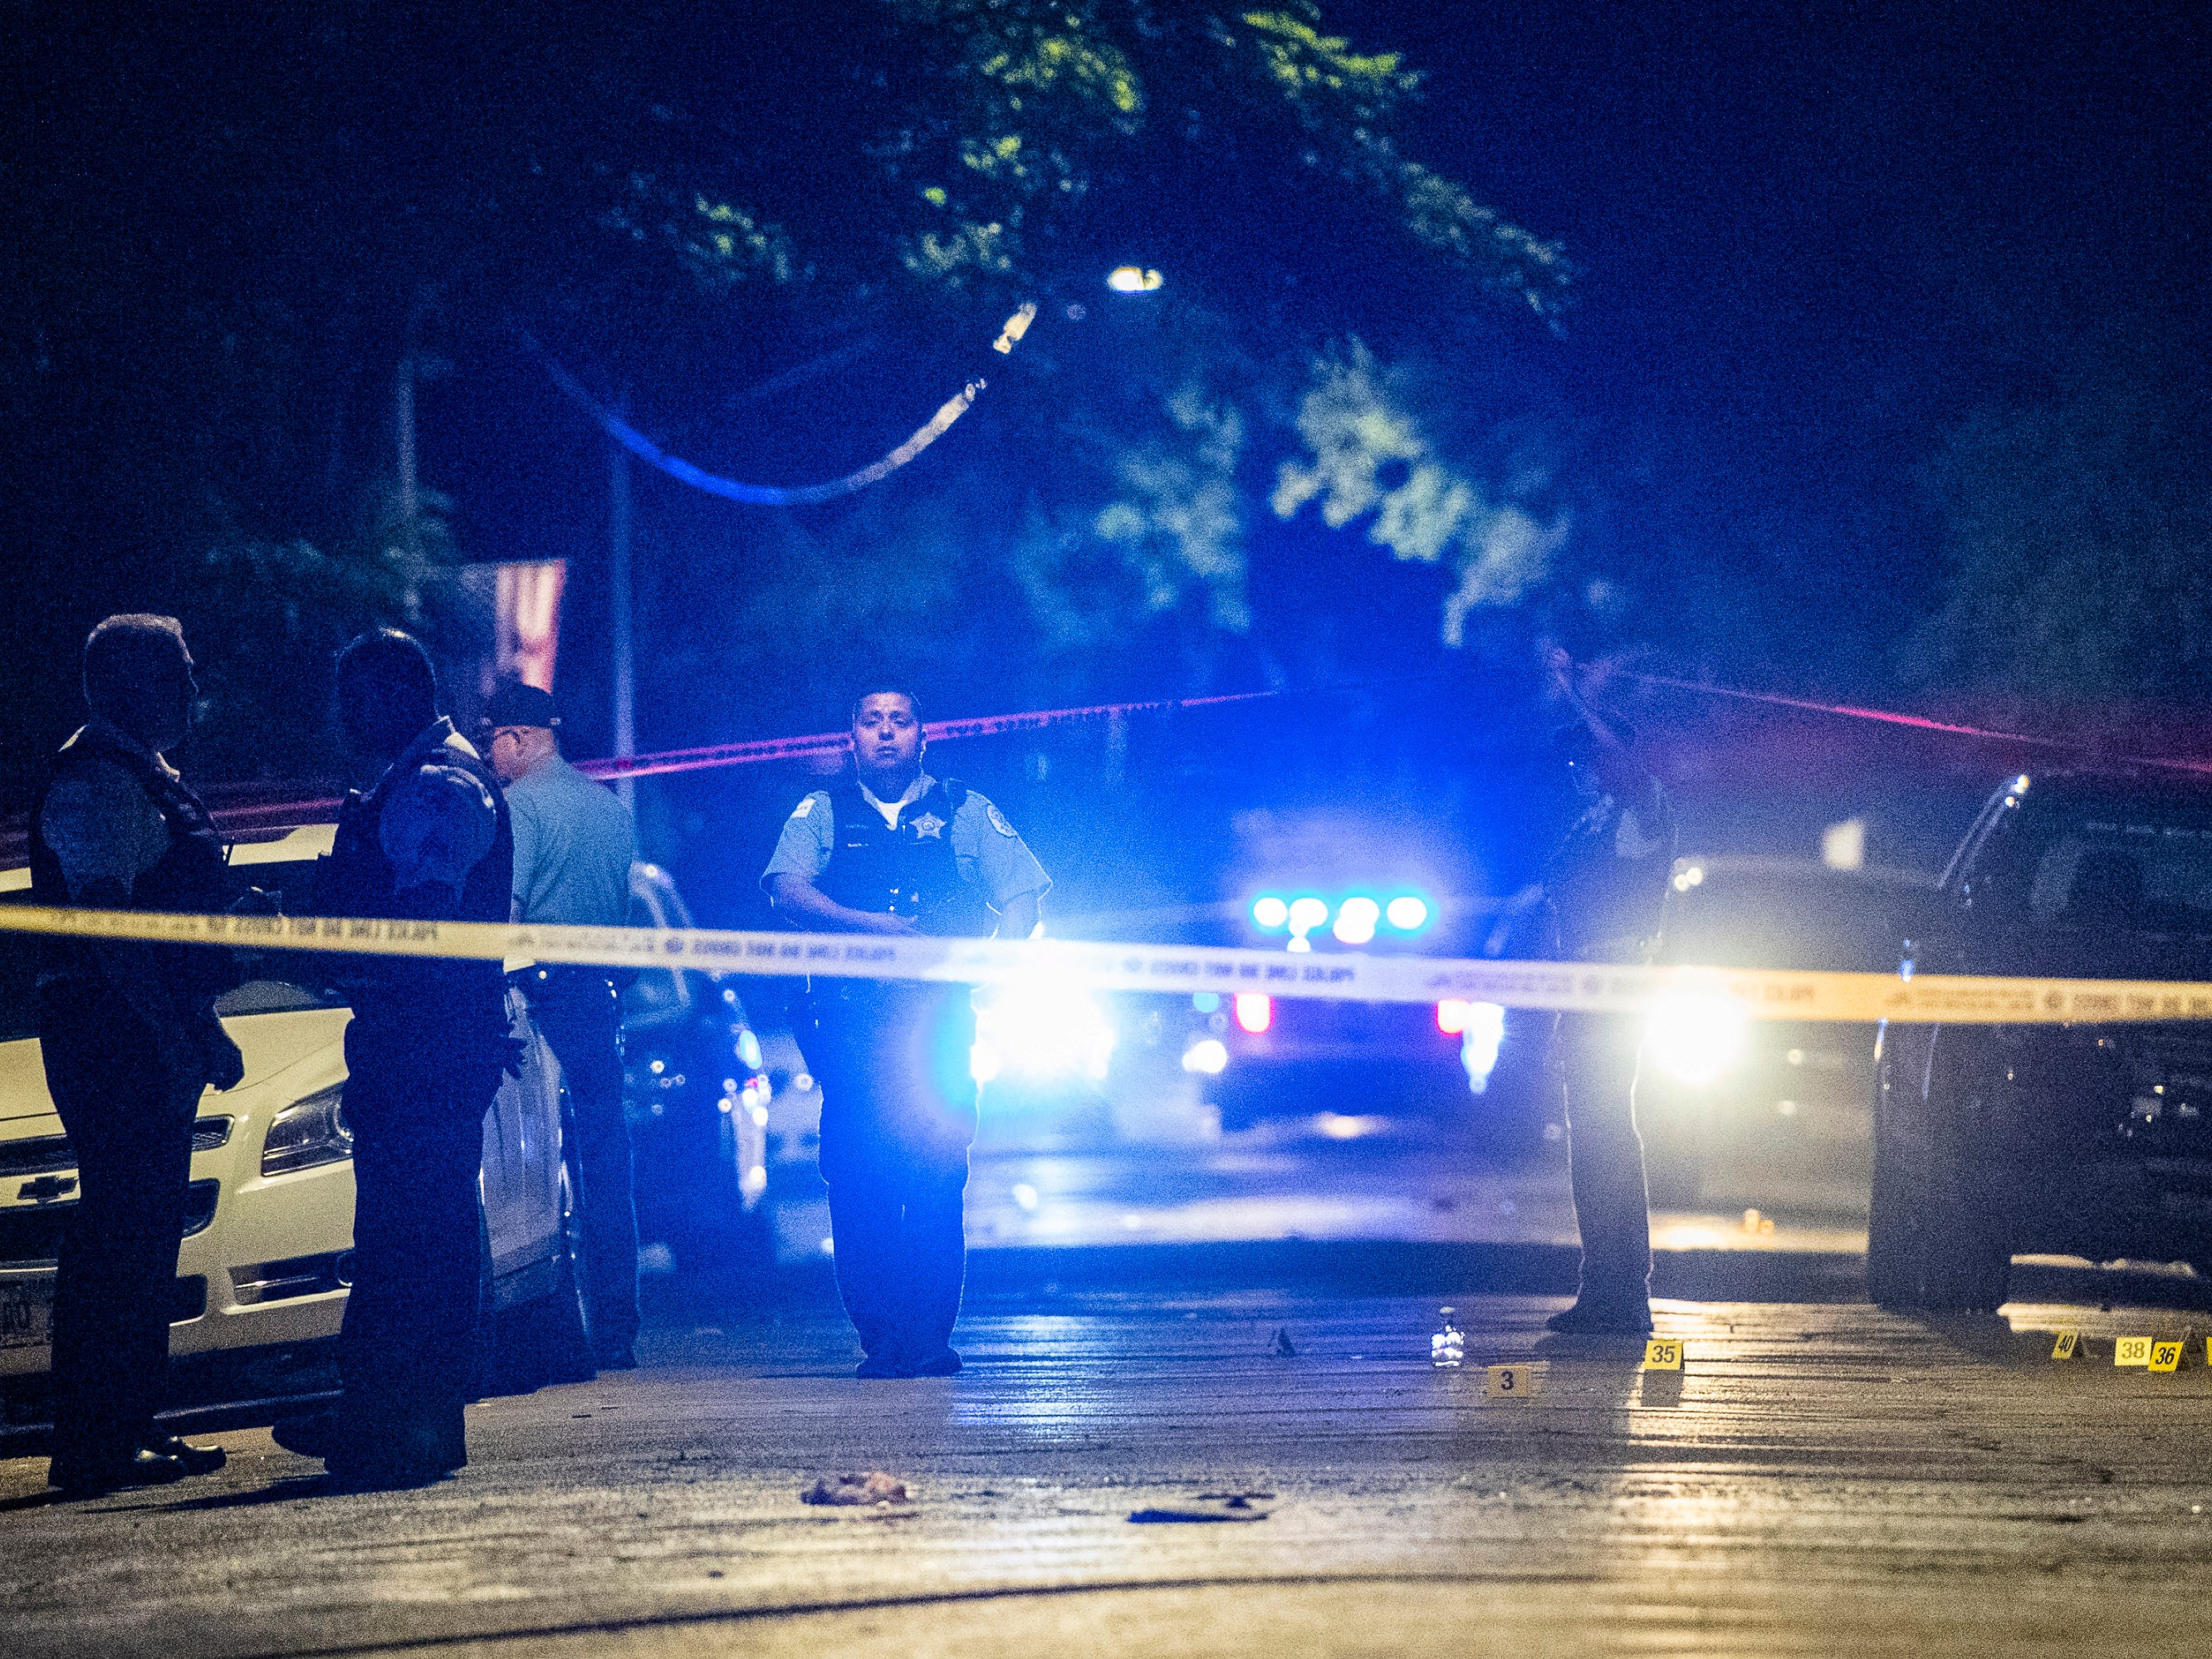 In this Aug. 5, 2018 photo, police investigate the scene where multiple people were shot in Chicago.